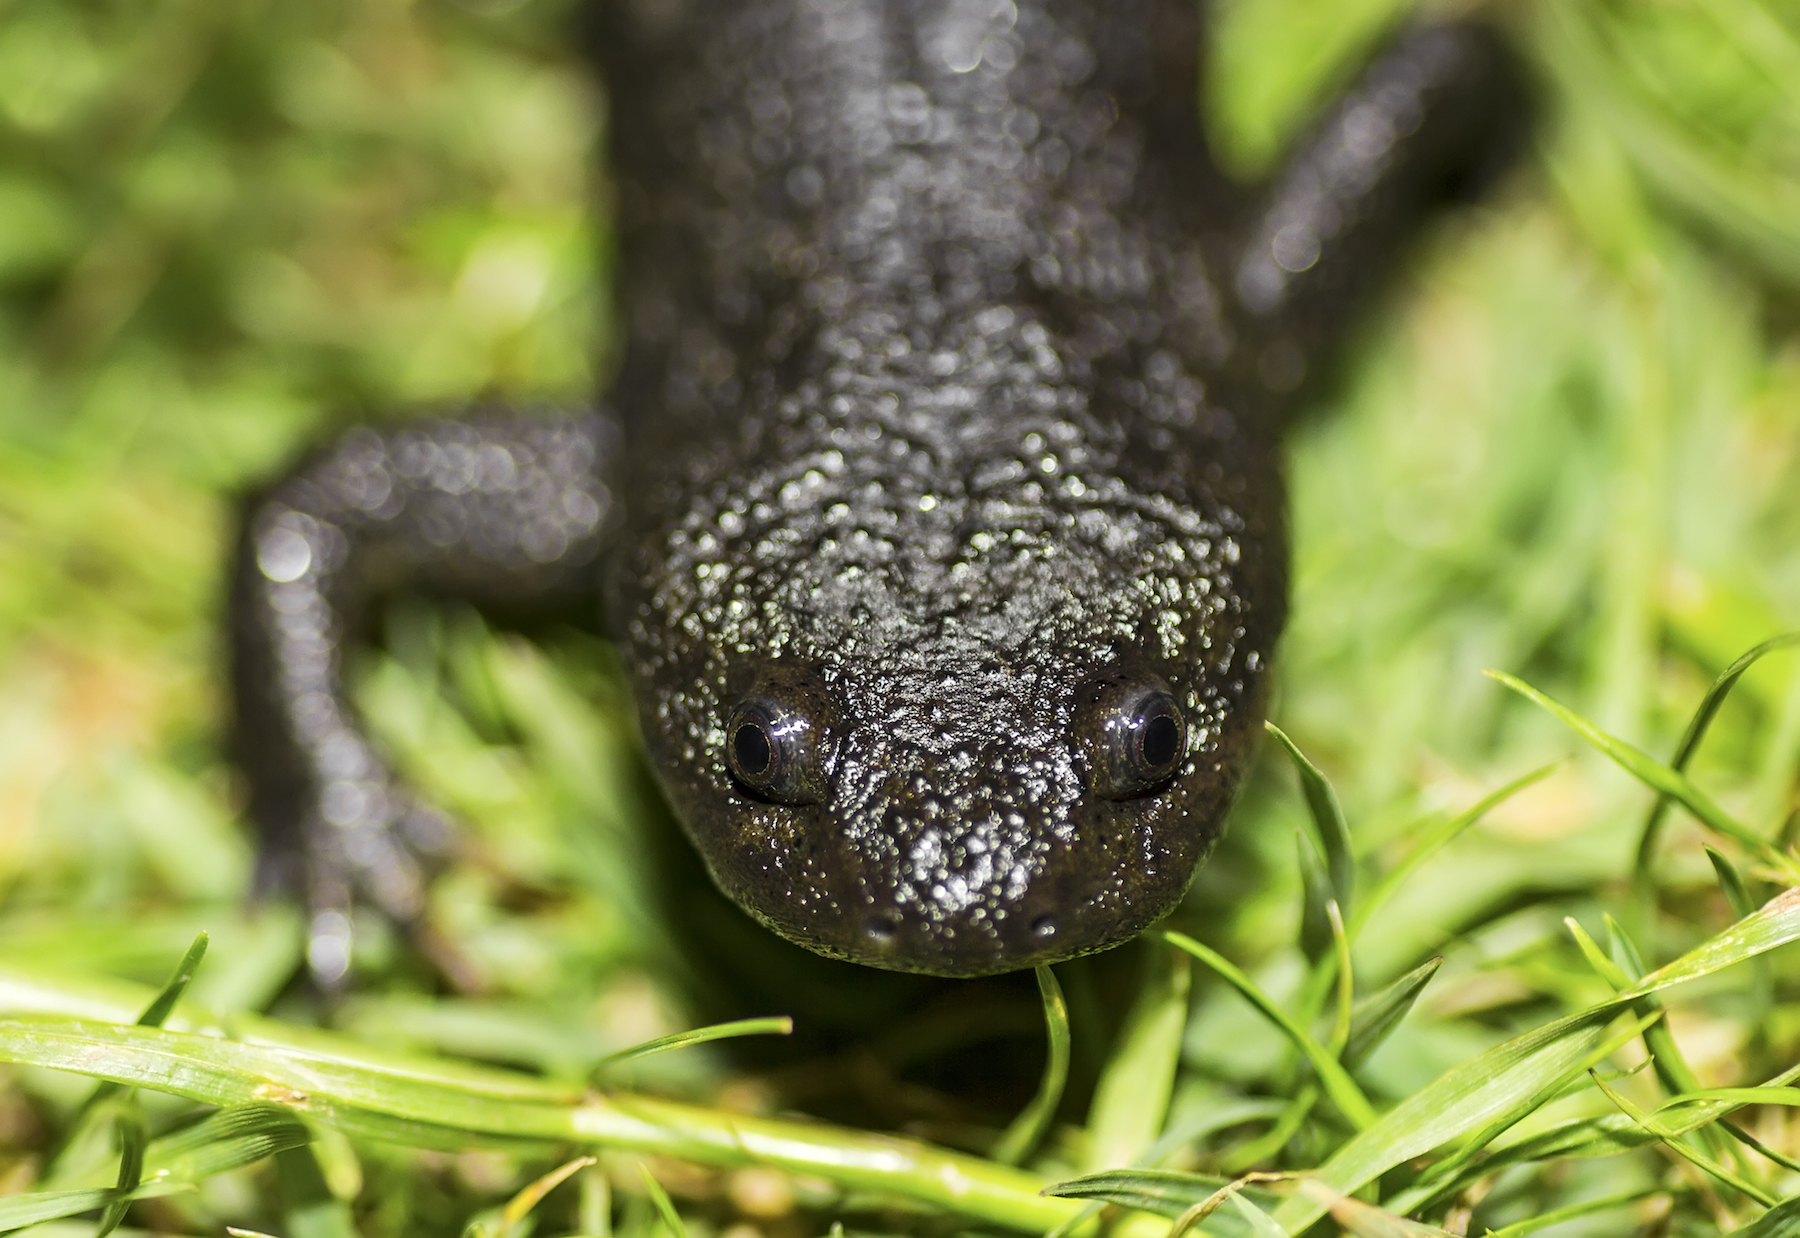 A new study has sequenced the expansive genome of a species of salamander and the results could someday allow humans to regenerate lost limbs.